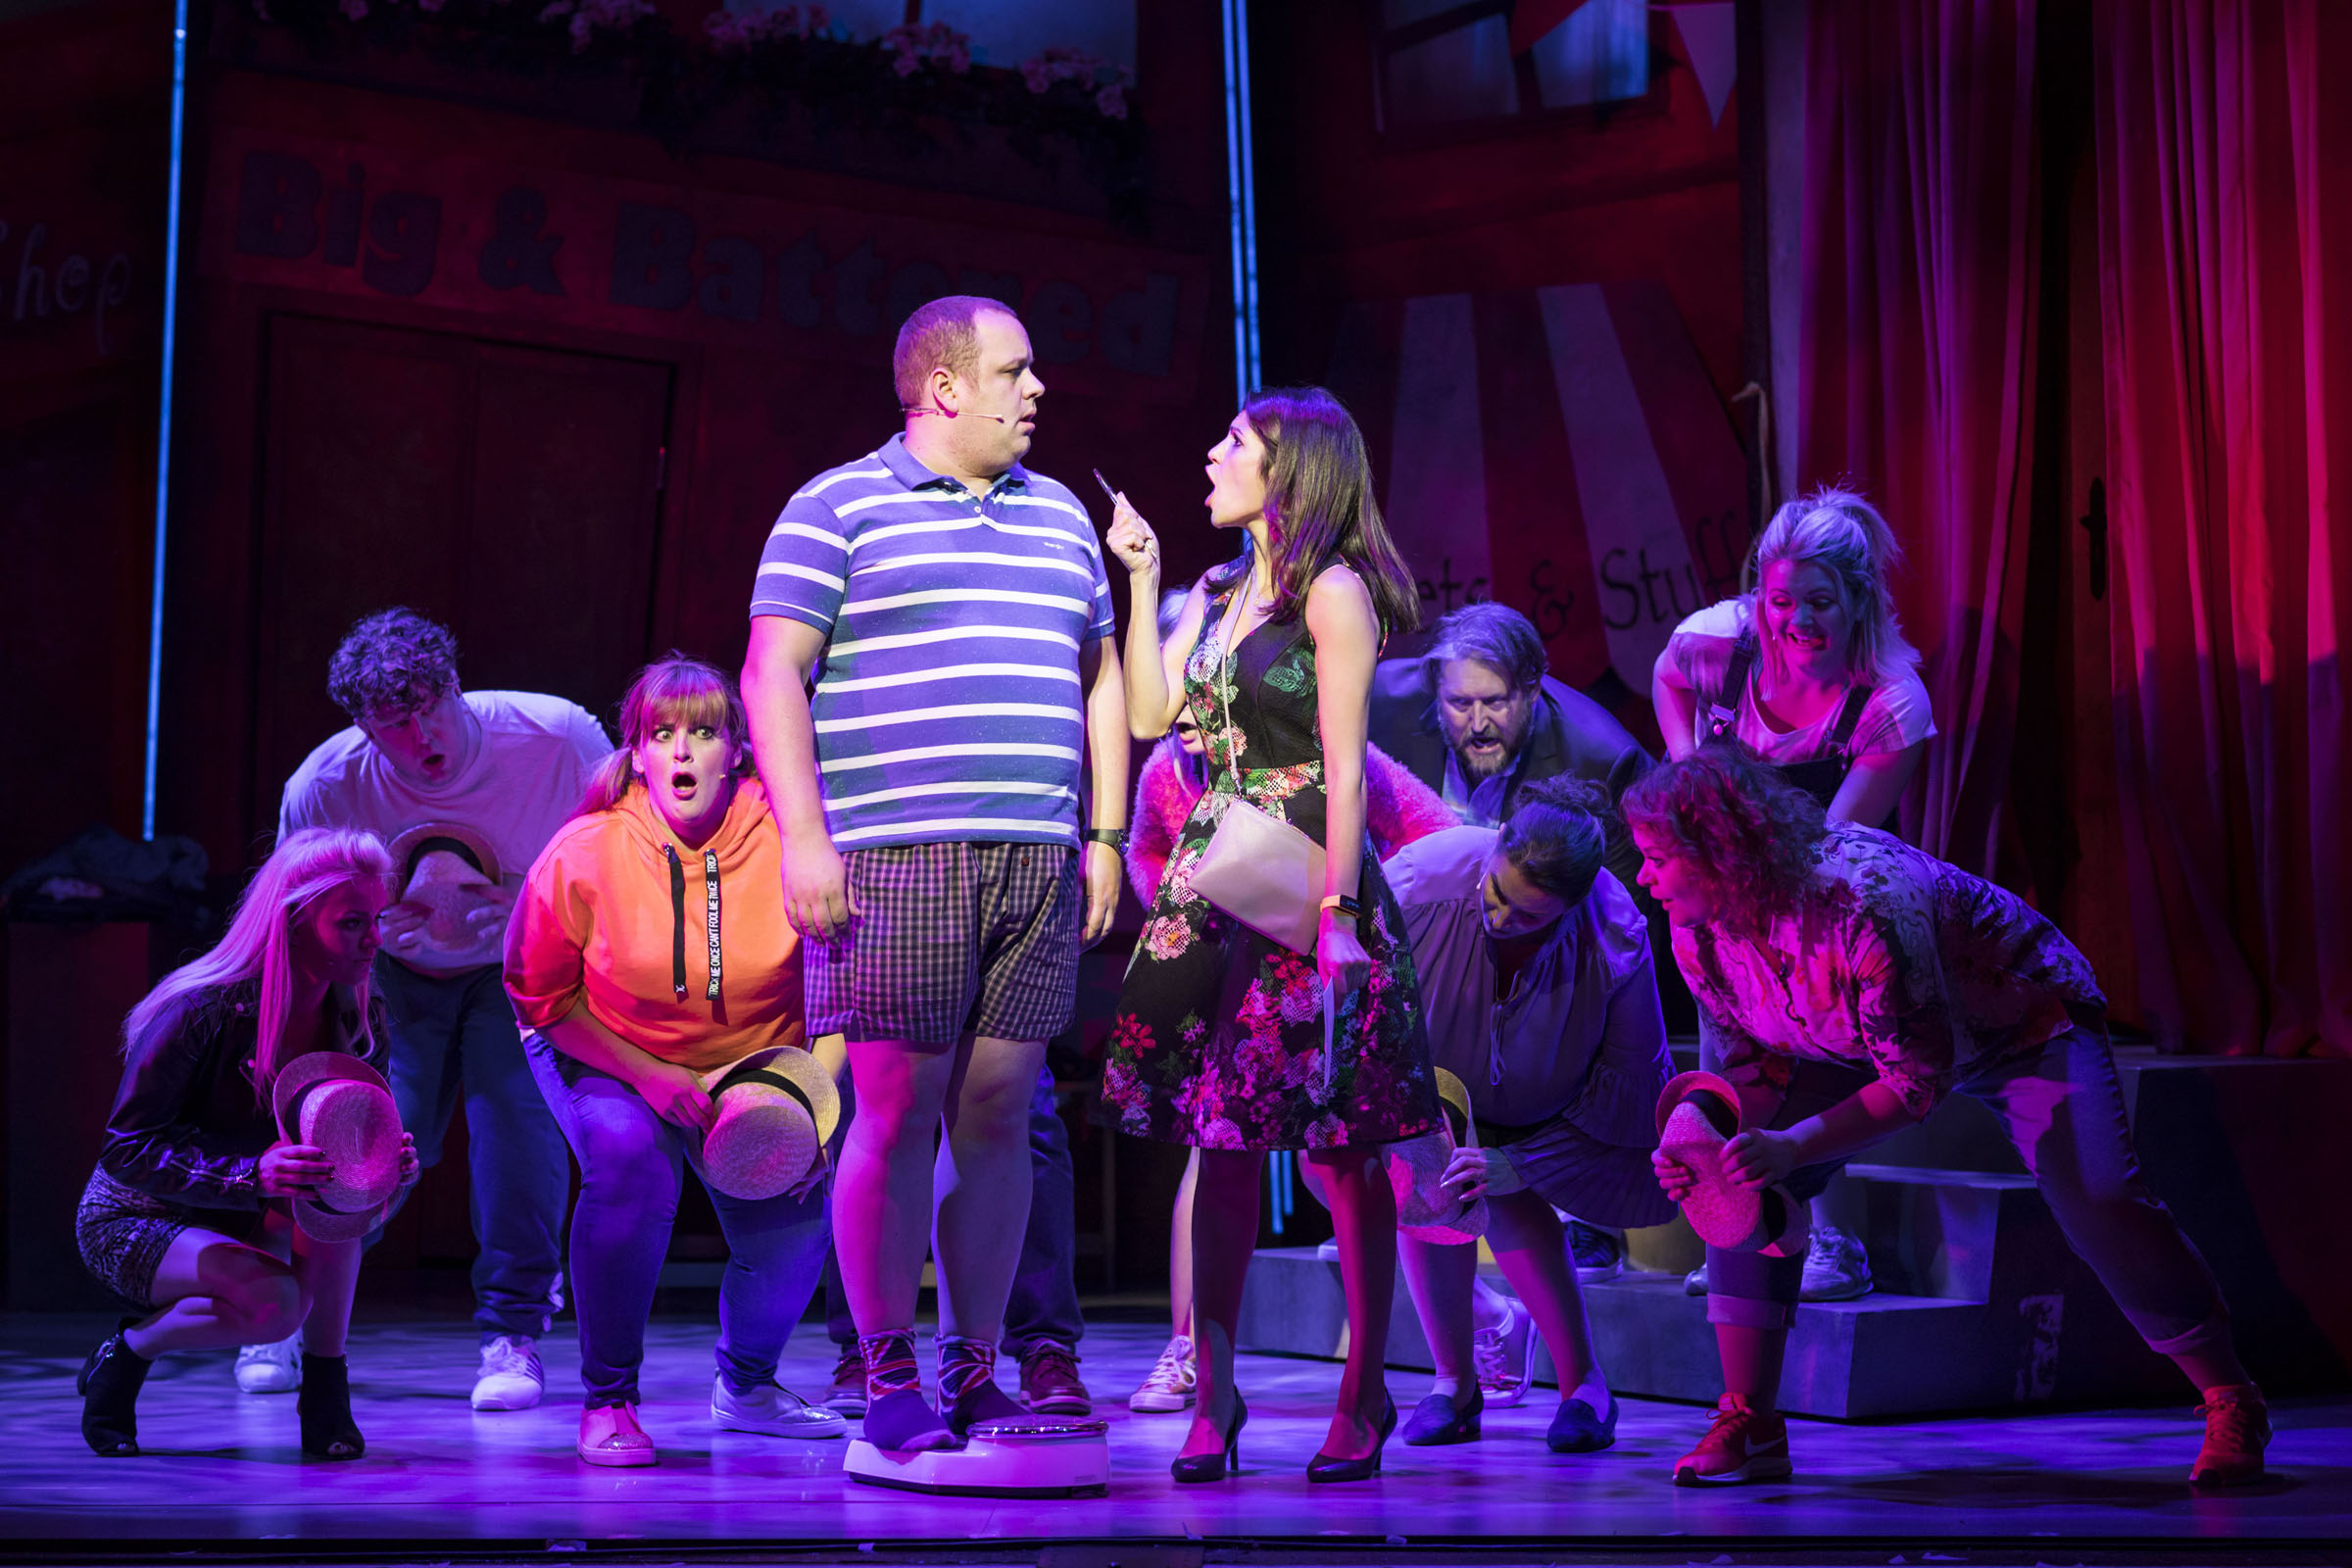 Neil Hurst, Natalie Anderson and the cast of Fat Friends the musical